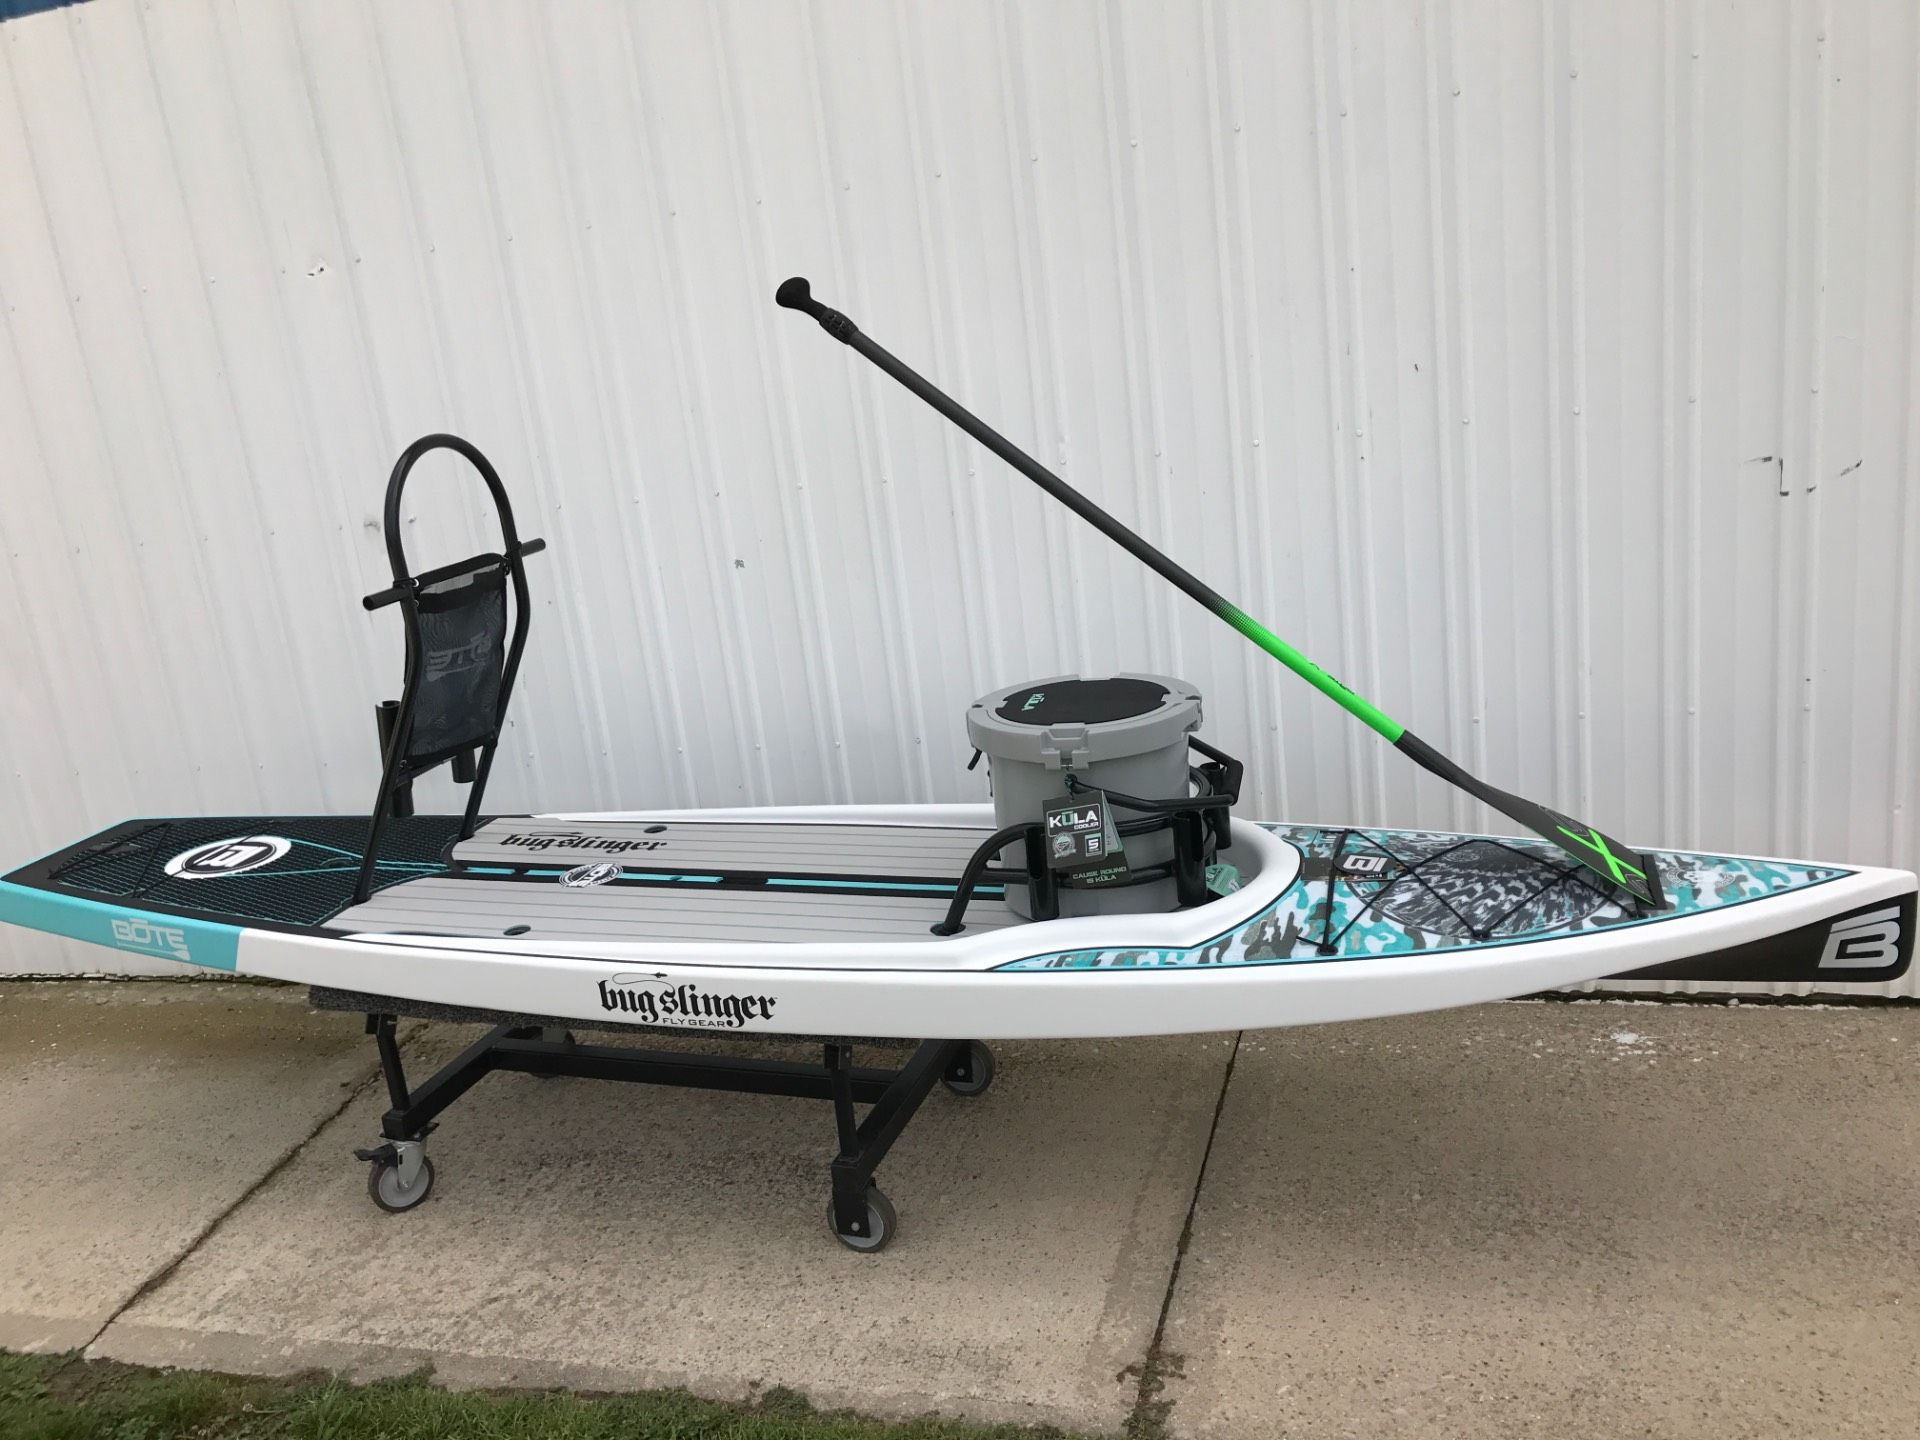 New 2017 bote 12 39 rackham bugslinger watercraft in coloma for Bote paddle board with motor